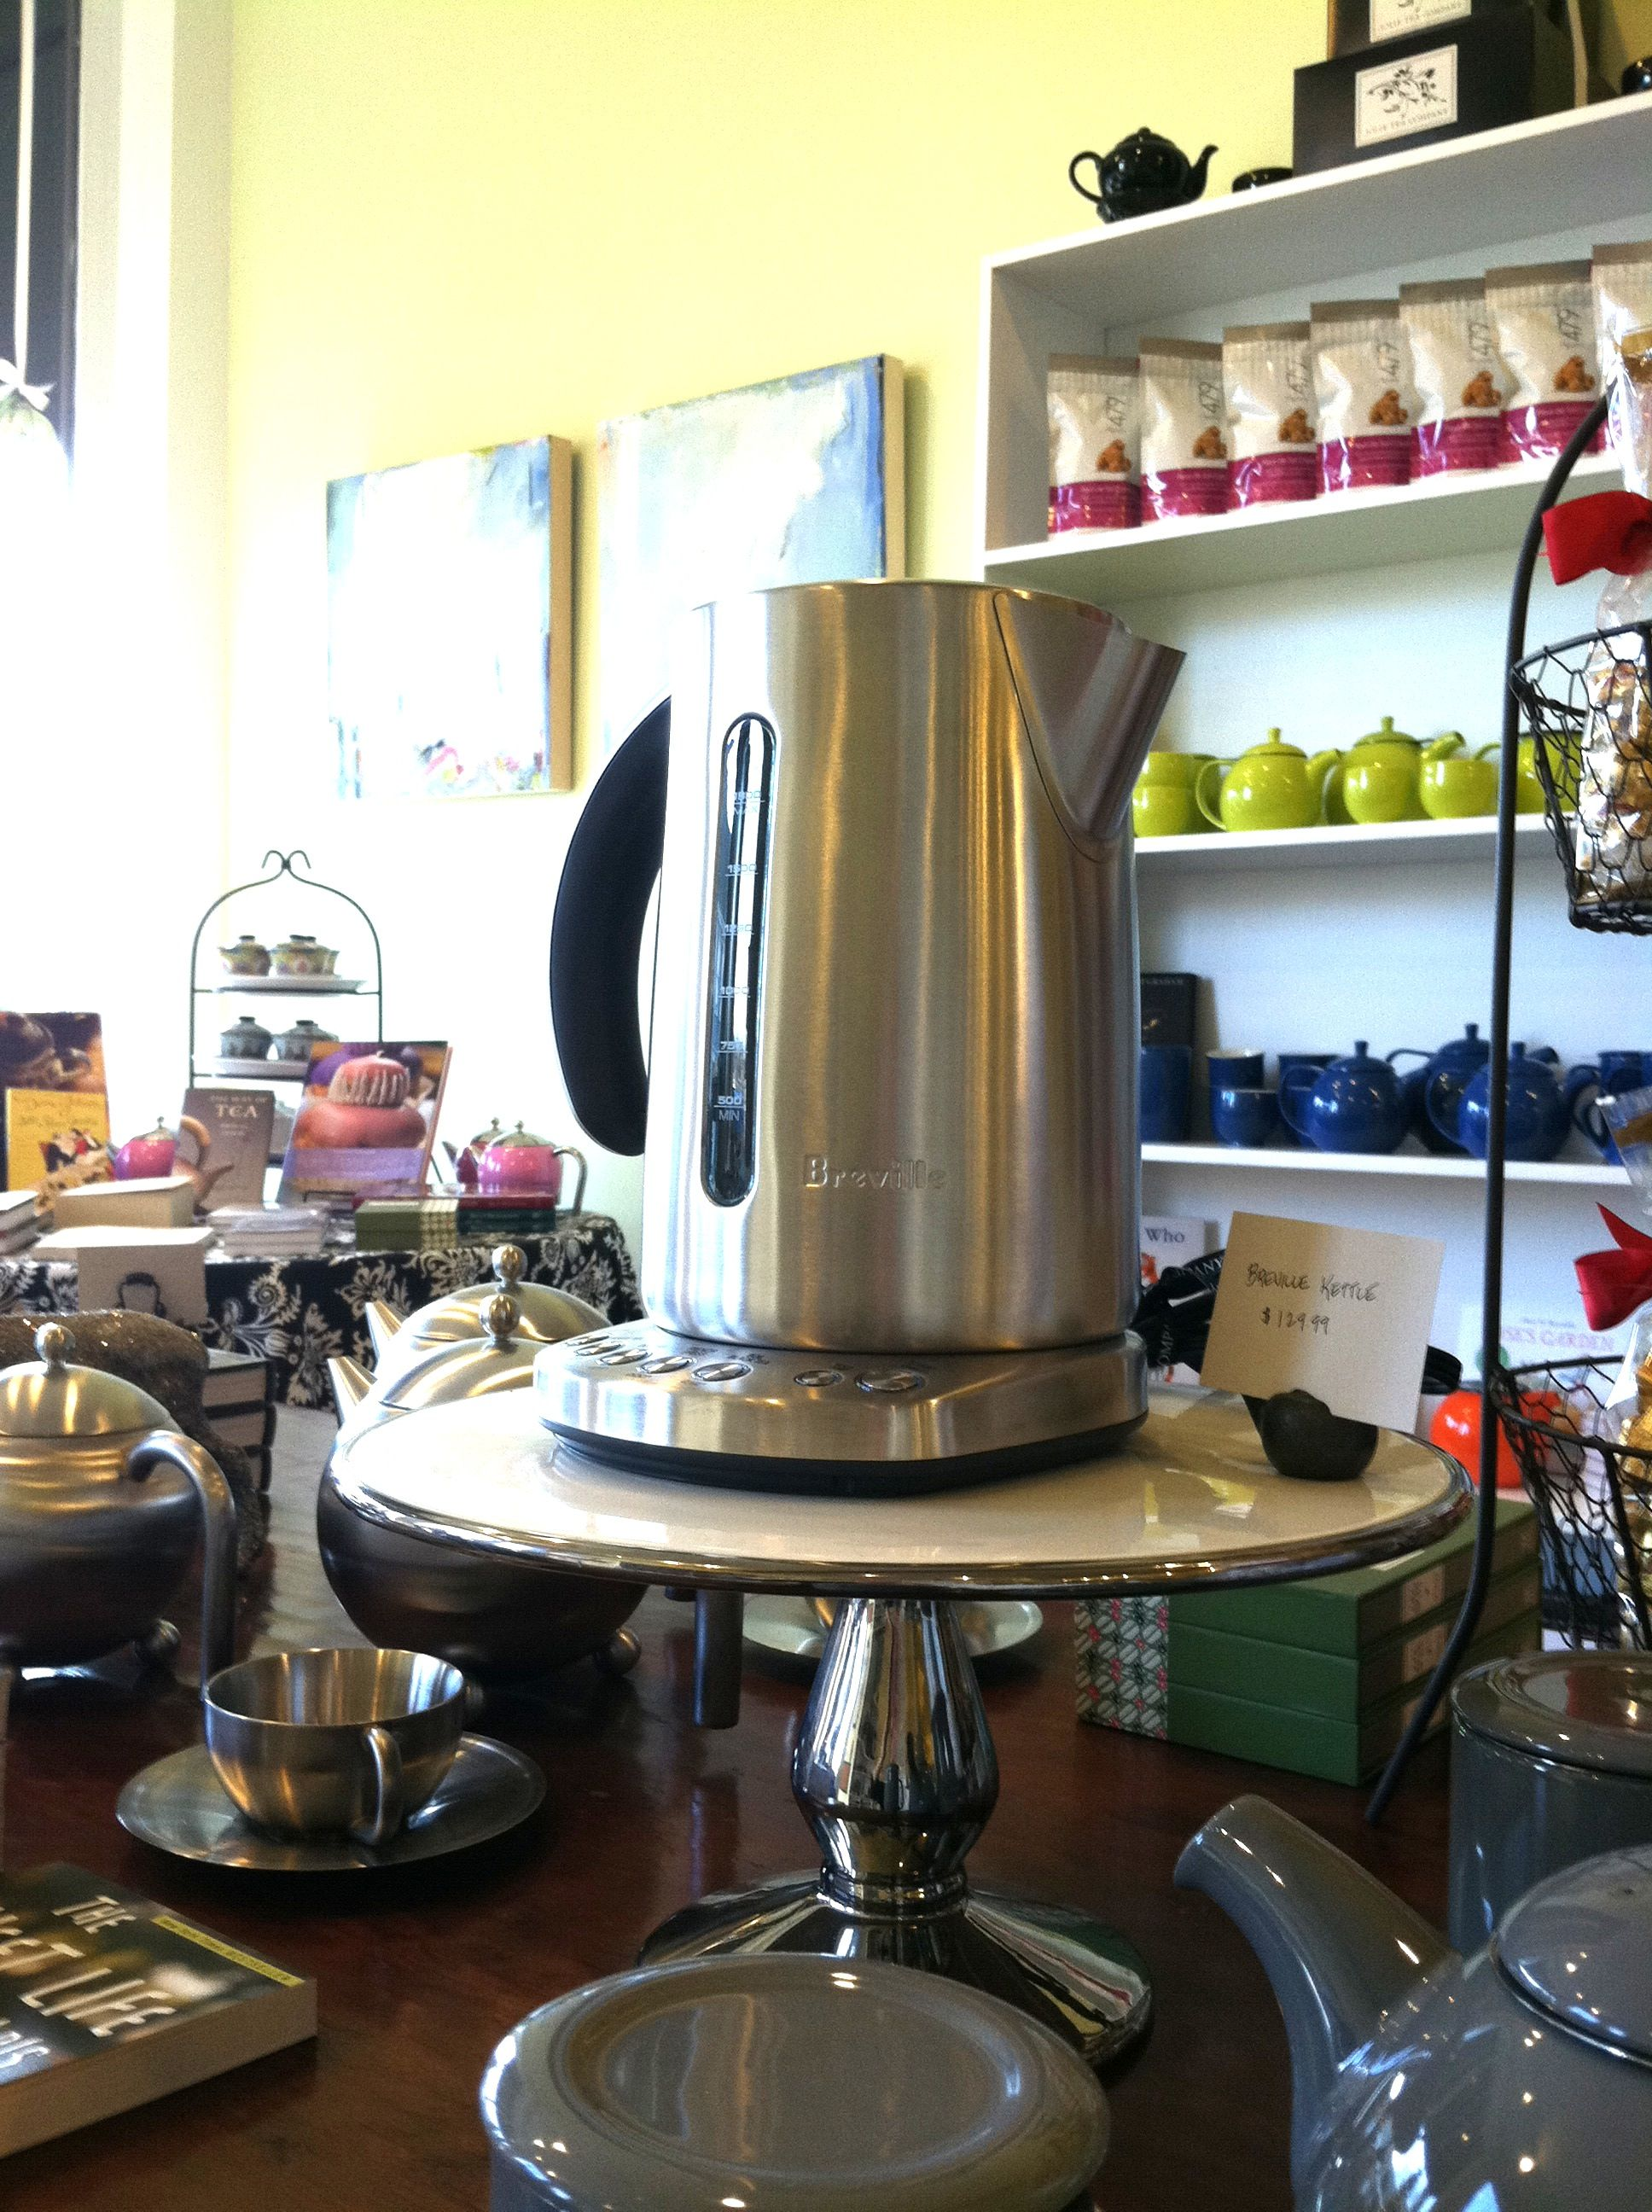 The perfect brew lies with the Breville!